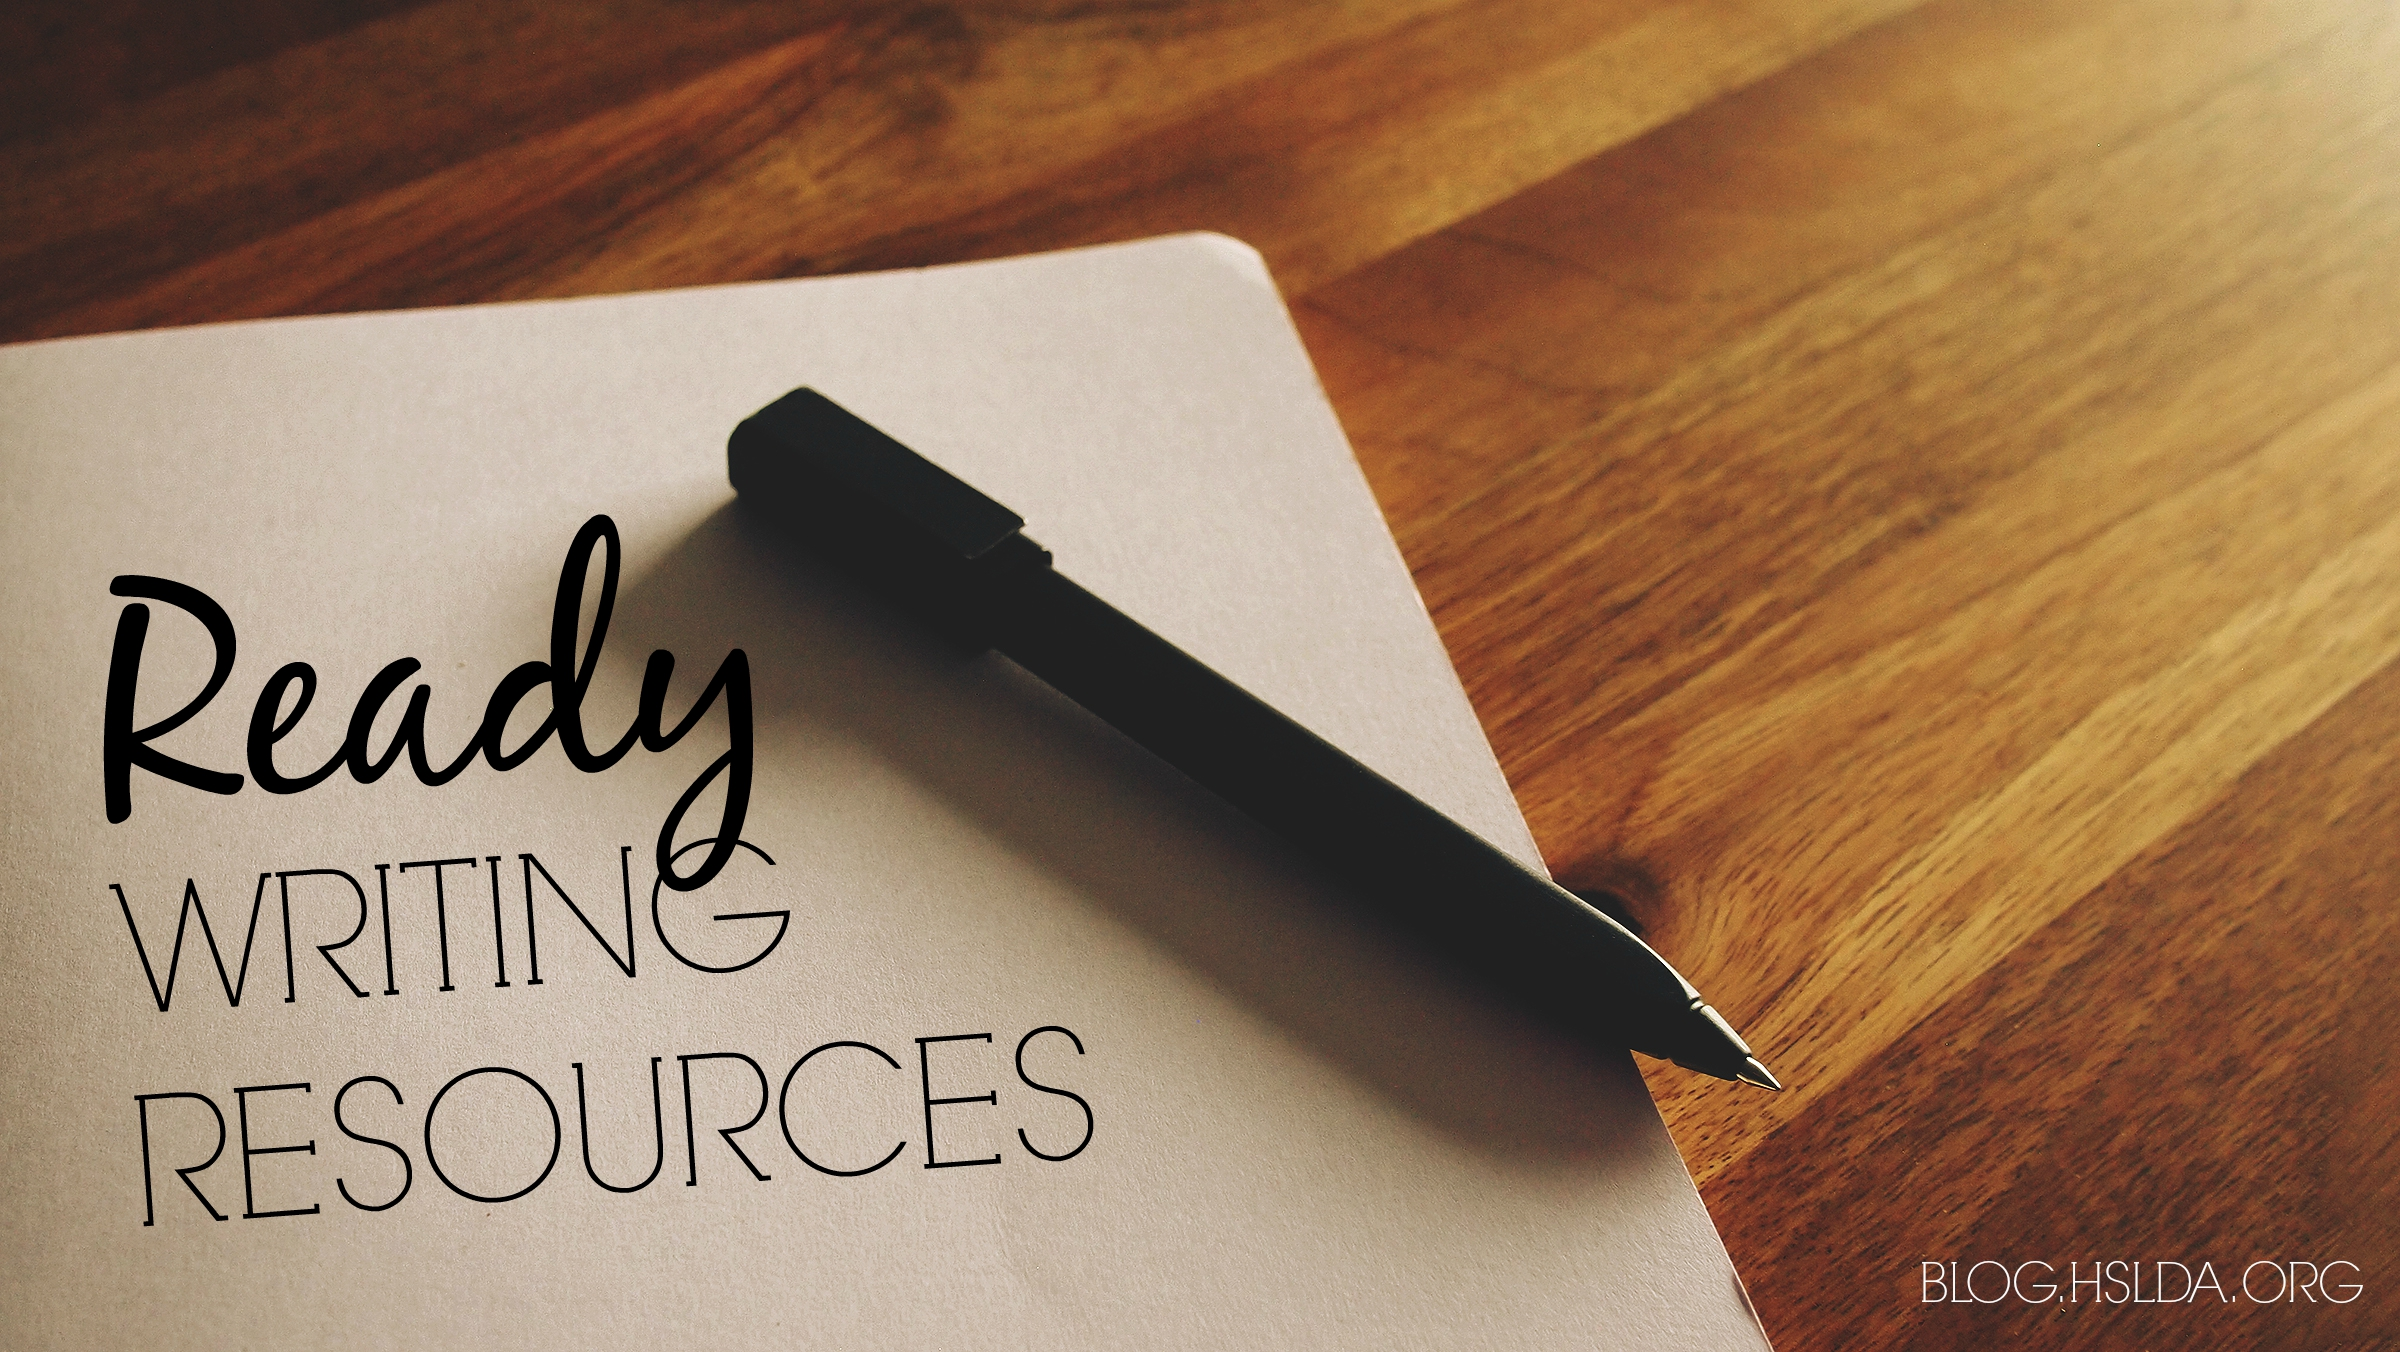 ready-writing-resources-carol-becker-hslda-blog.jpg